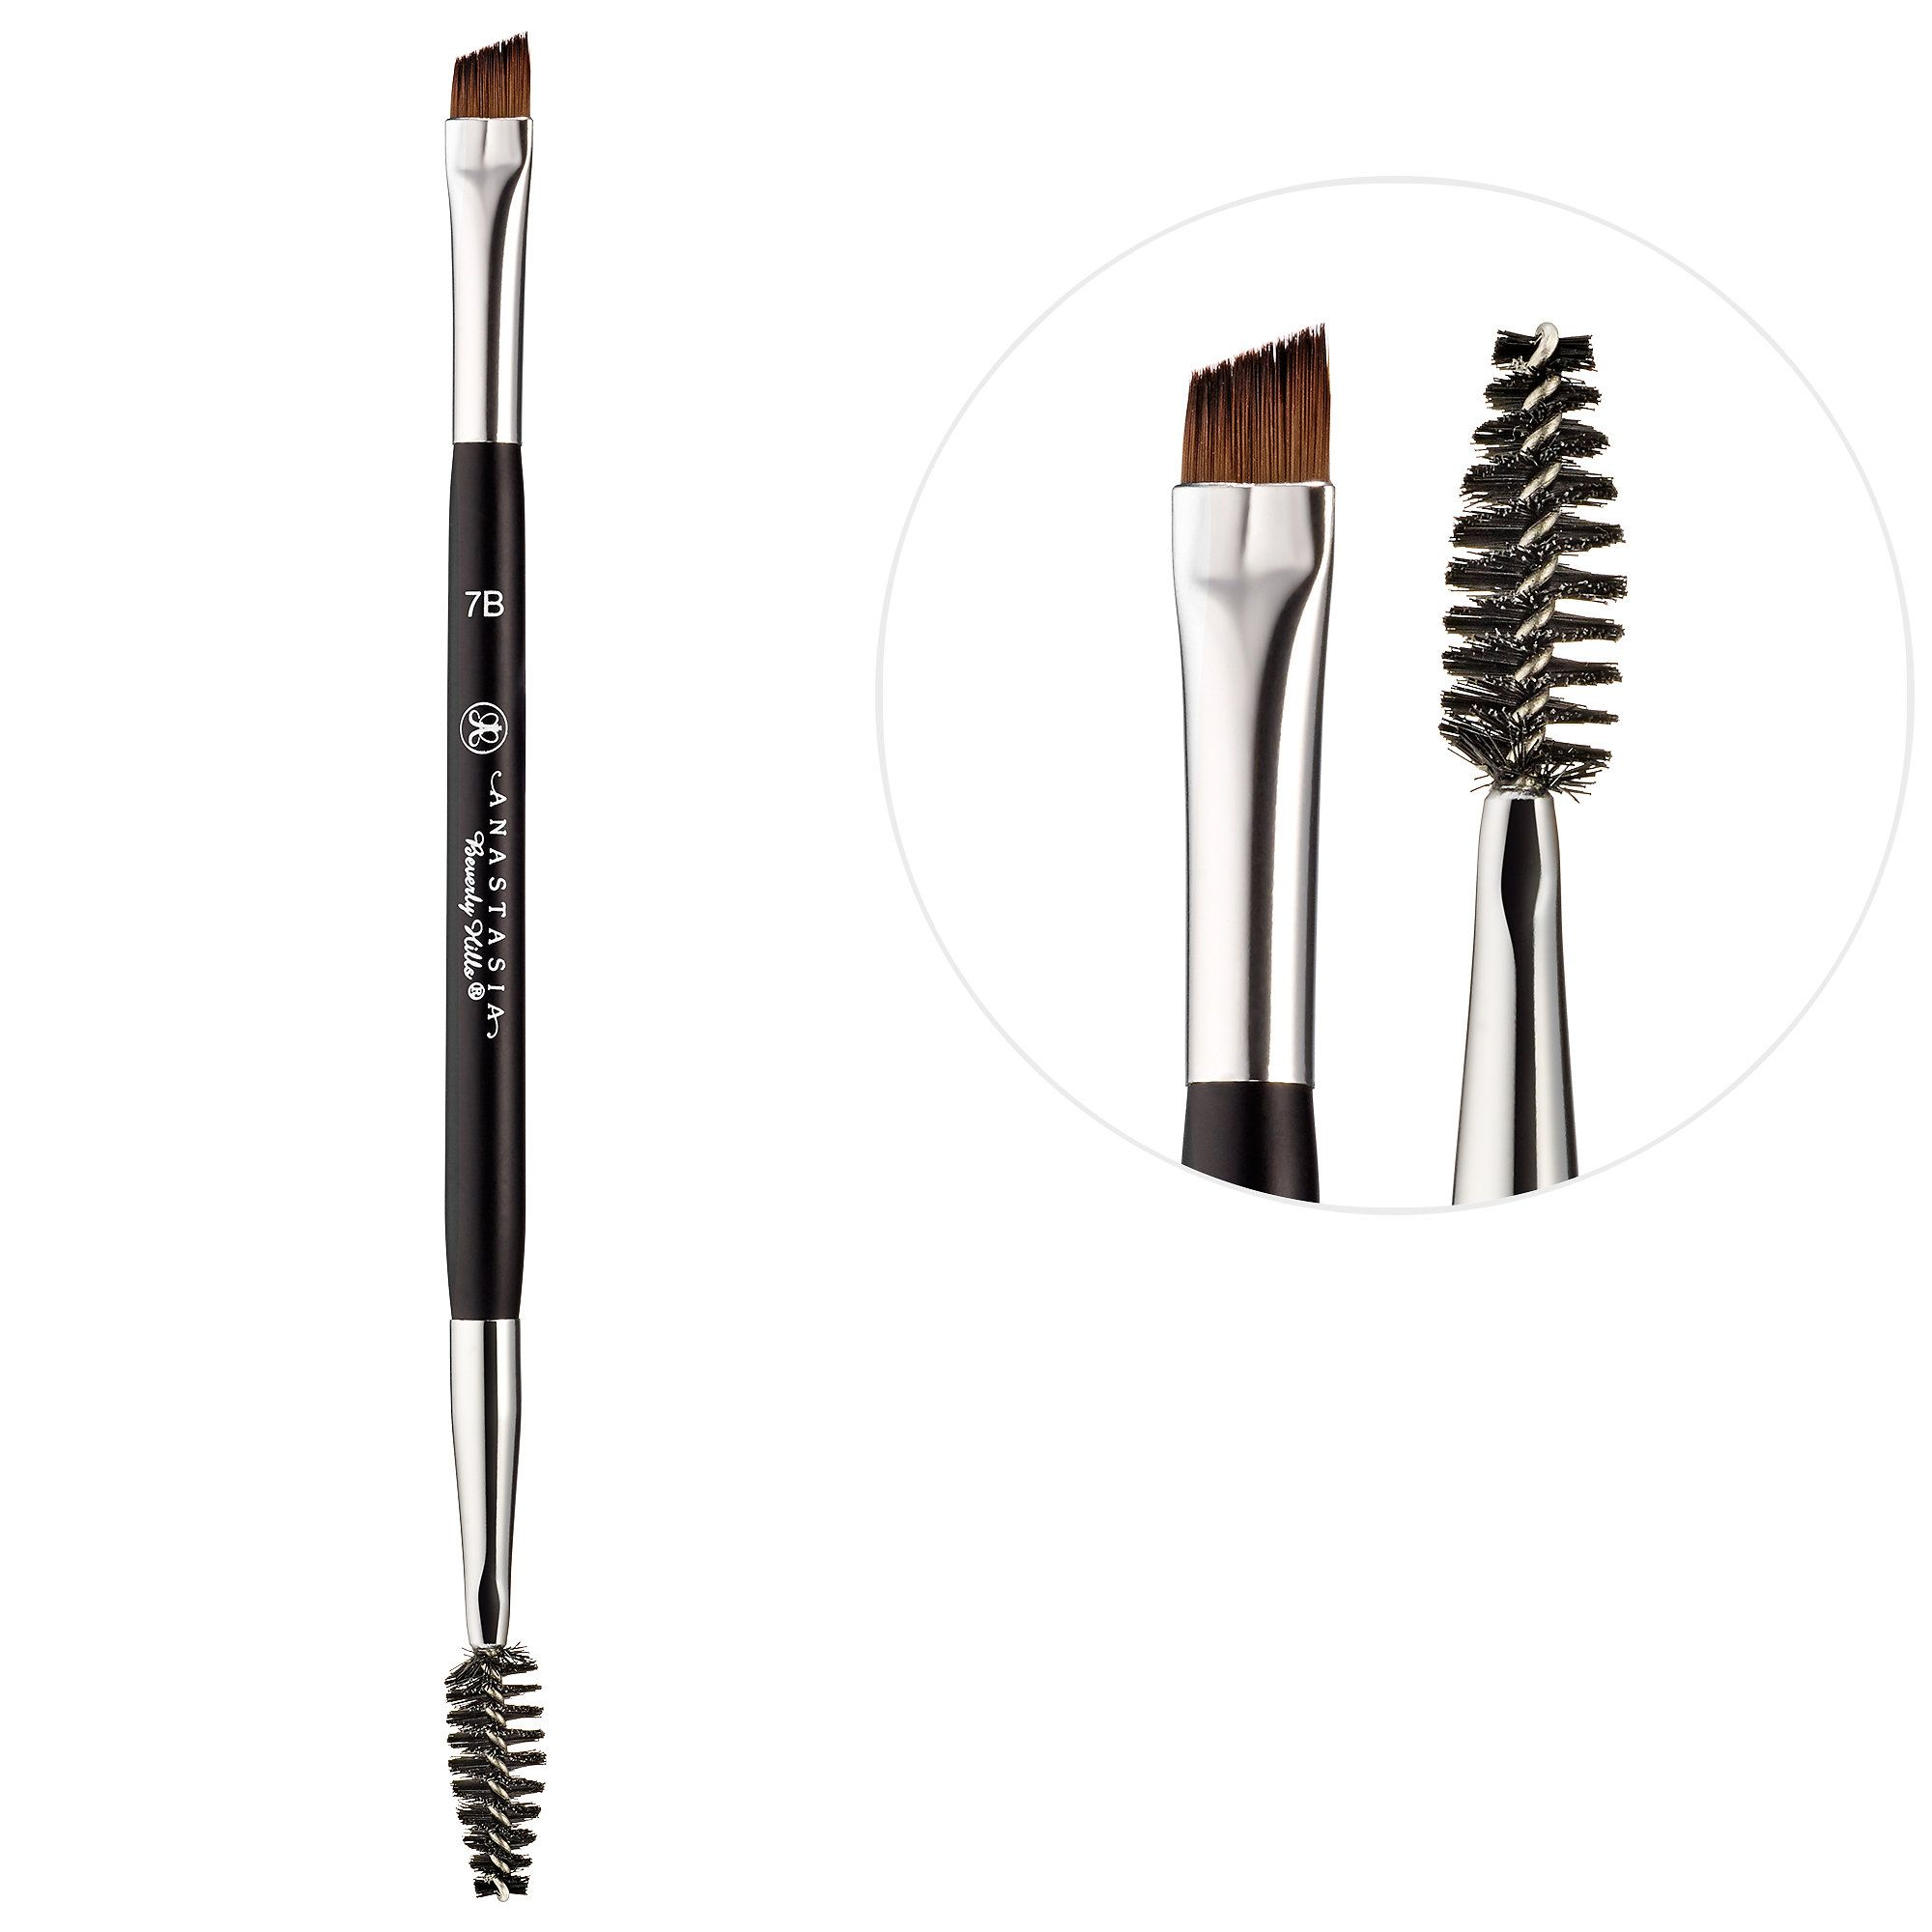 d127cafbaa0 Shop Anastasia Beverly Hills' Brush #7B at Sephora. The flat, angled brow  brush mimics real hairs to precisely sweep on color.